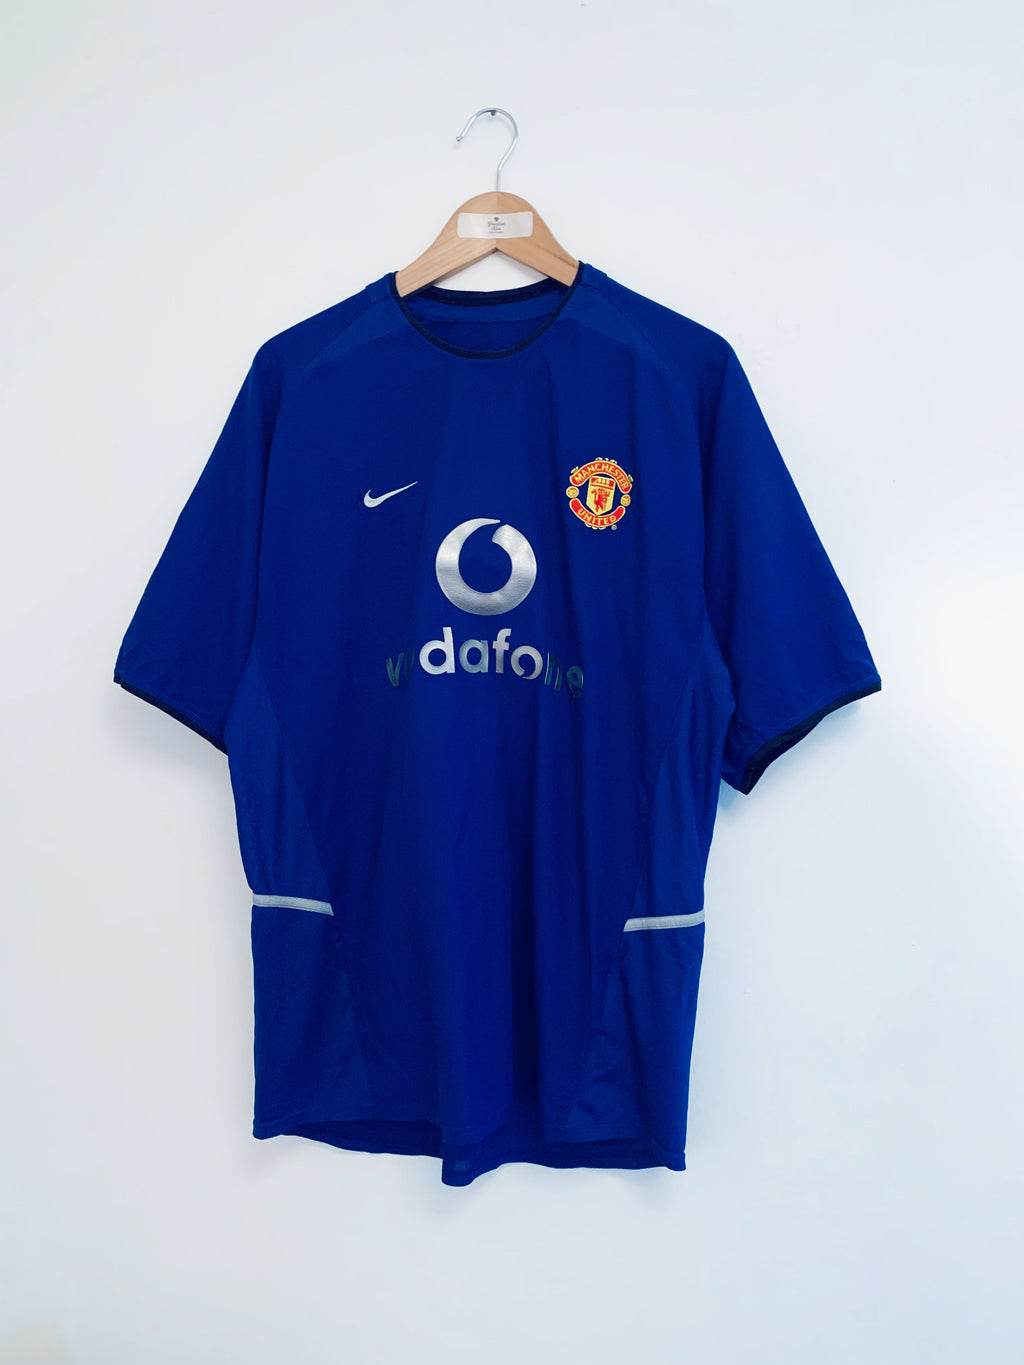 2002/03 Manchester United Third Shirt (L) 8.5/10